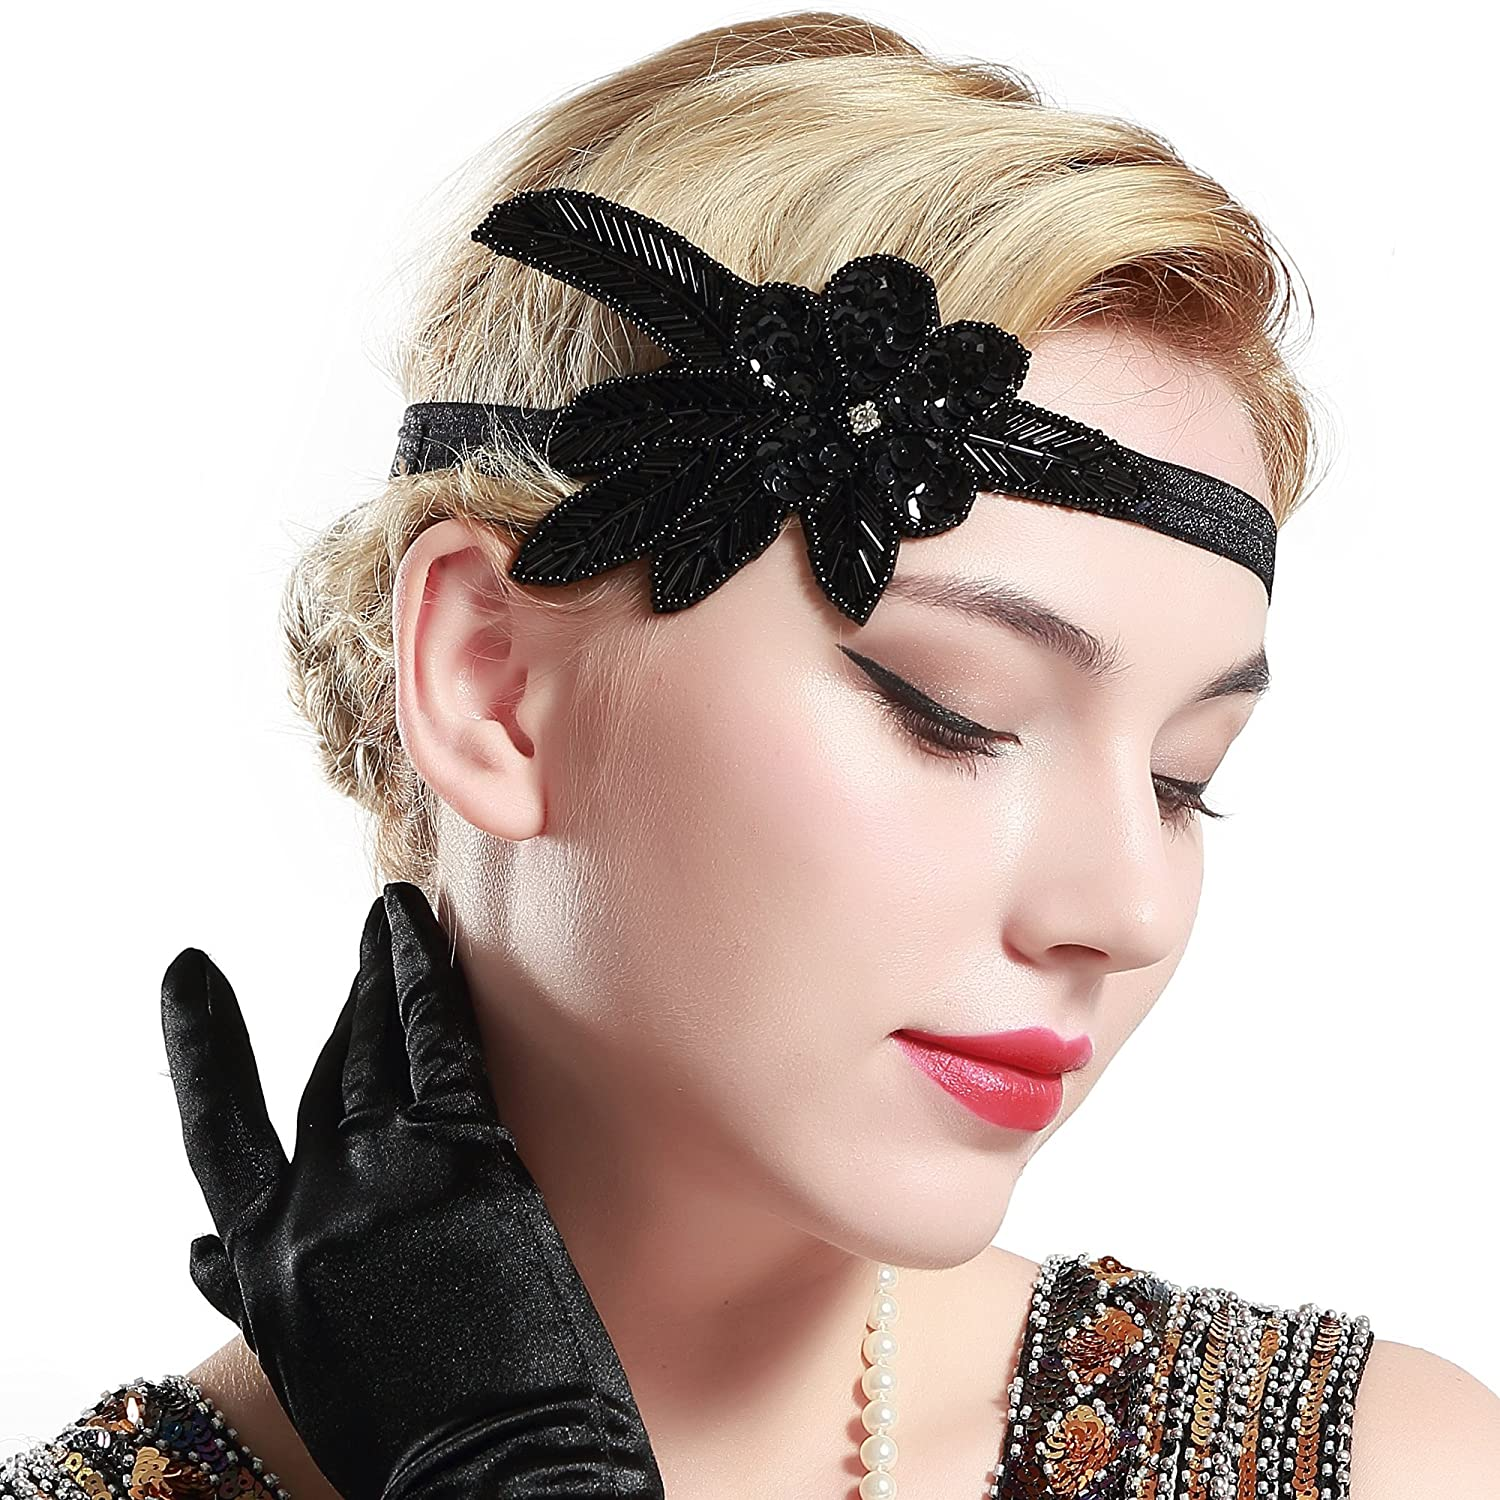 BABEYOND 1920s Flapper Applique Headband Beaded Great Gatsby Headpiece Vintage 20s Flapper Gatsby Hair Accessories (Black-1)